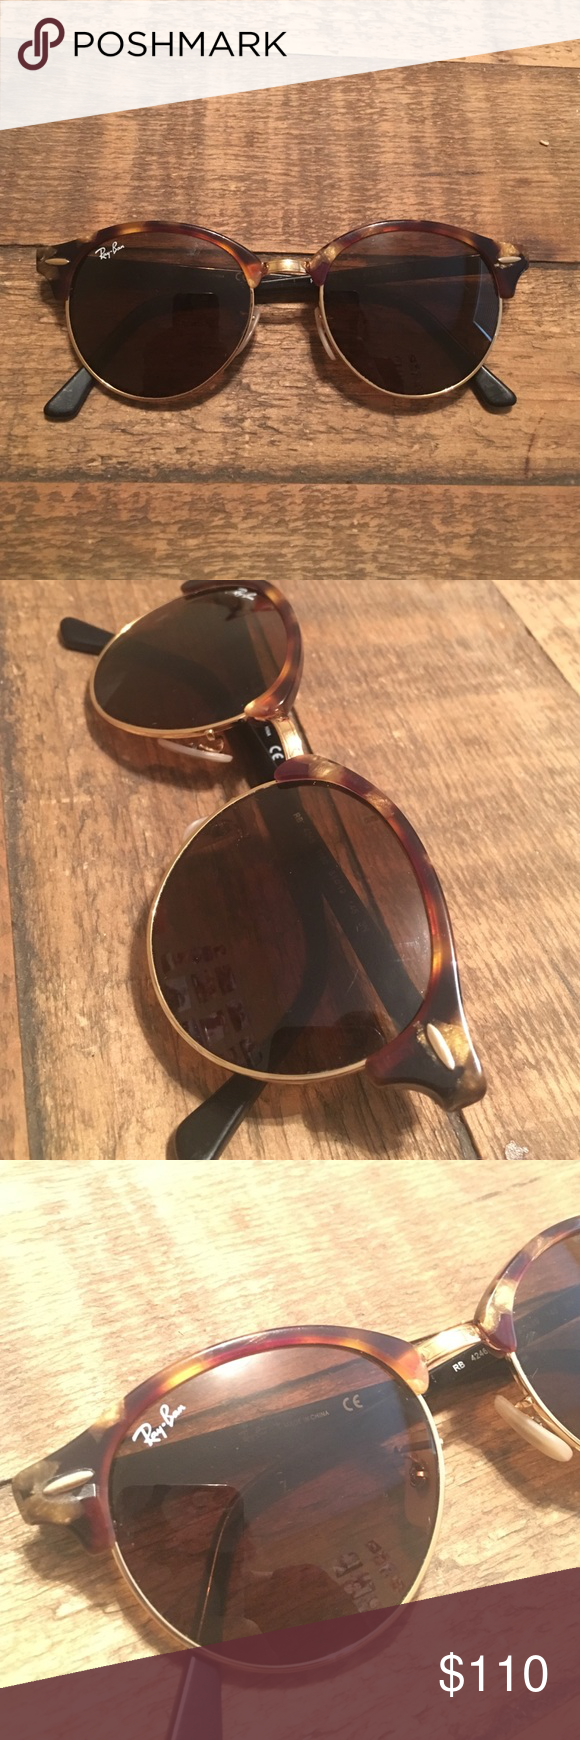 Ray ban sunglasses for couple - Ray Ban Sunglasses Round Ray Ban Sunglasses In Great Condition A Couple Of Scratches